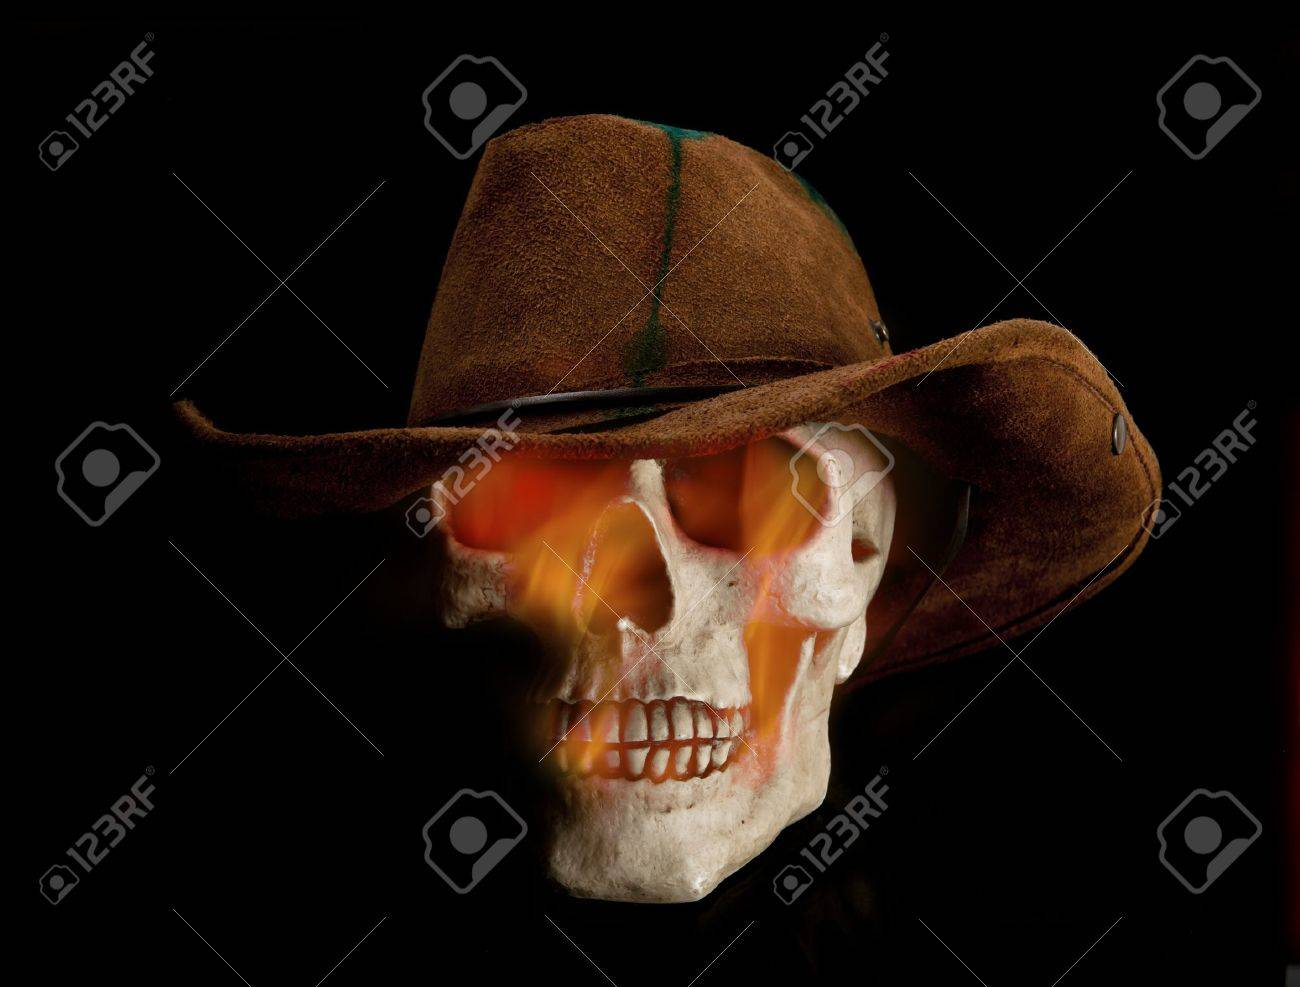 Skull With Cowboy Hat Tattoo flaming skull Scary flaming